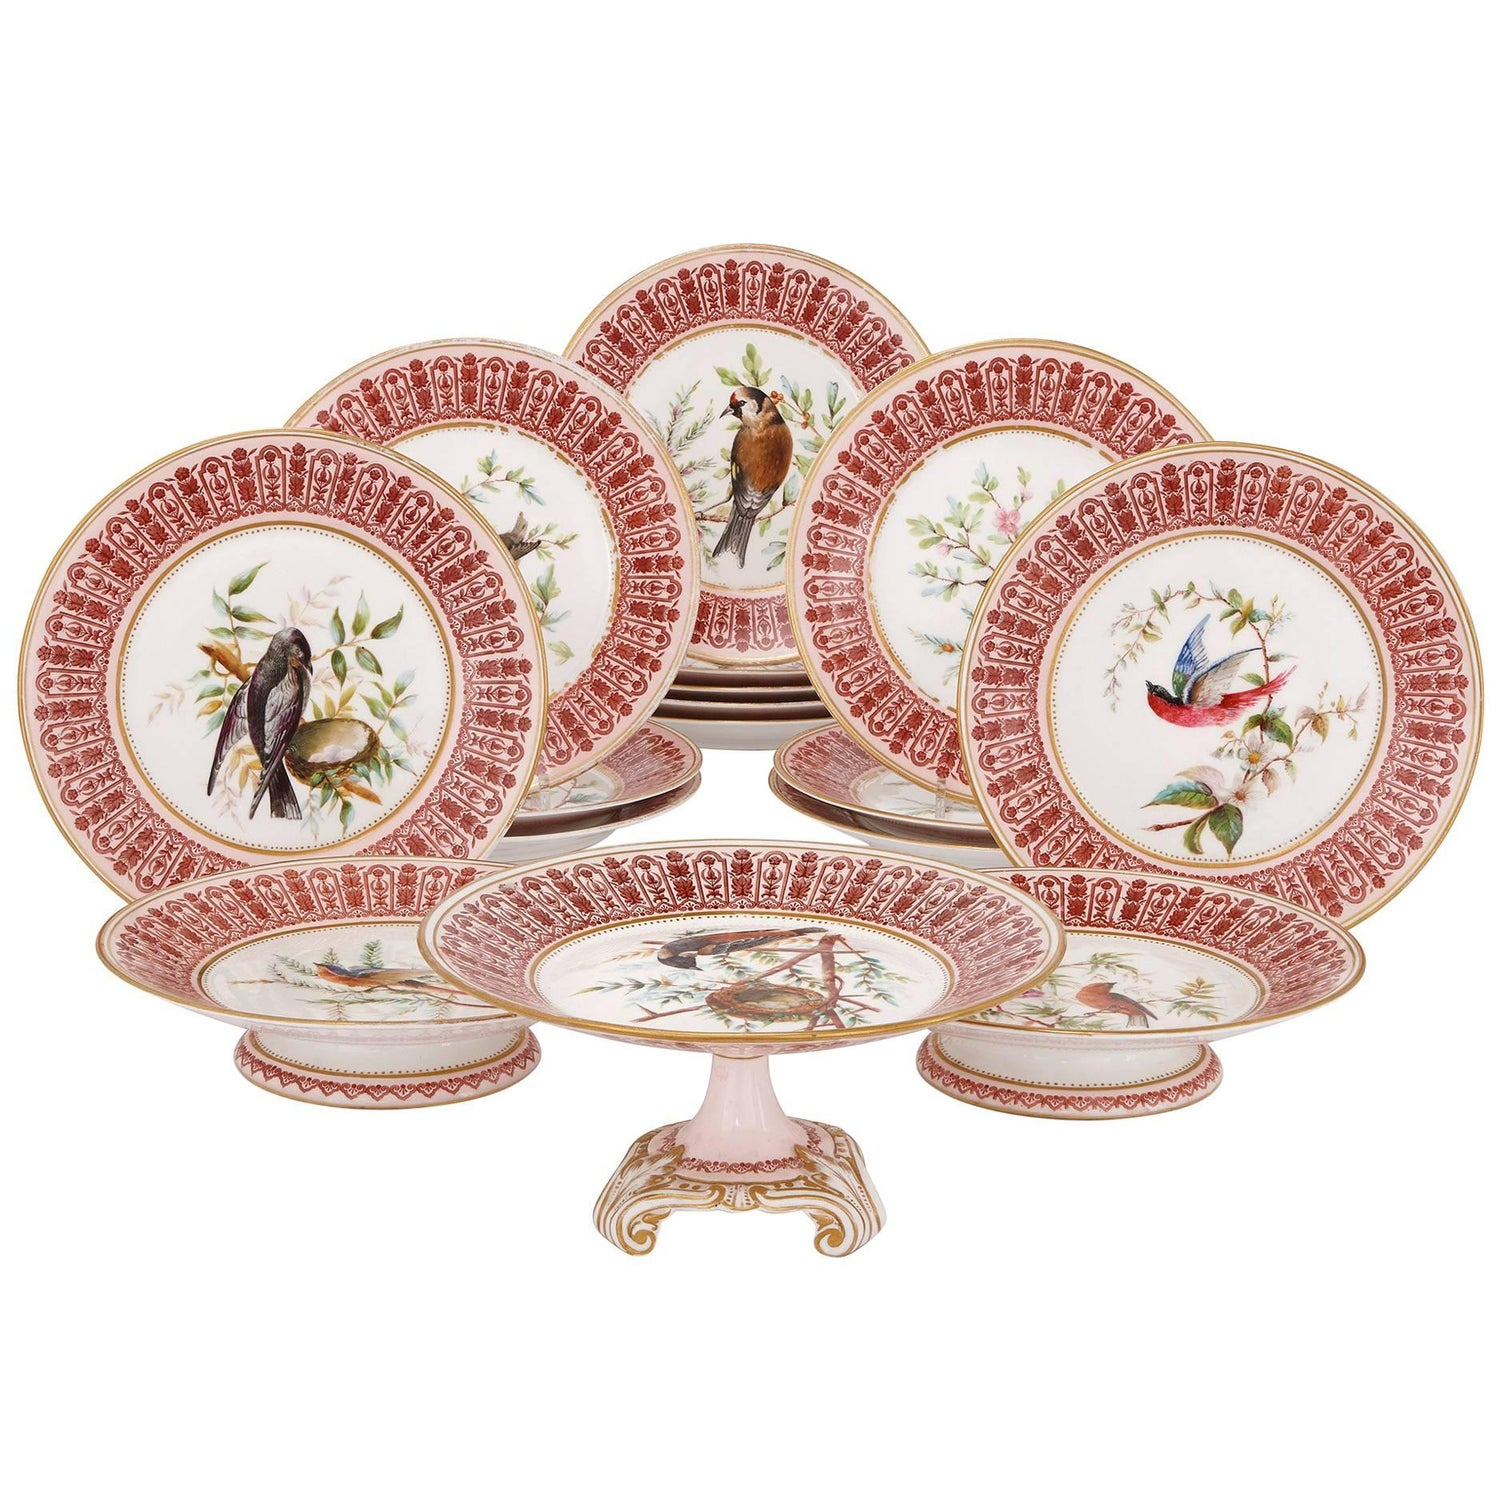 Antique english sixteen piece dessert service by royal crown derby antique english sixteen piece dessert service by royal crown derby porcelain for sale at 1stdibs reviewsmspy